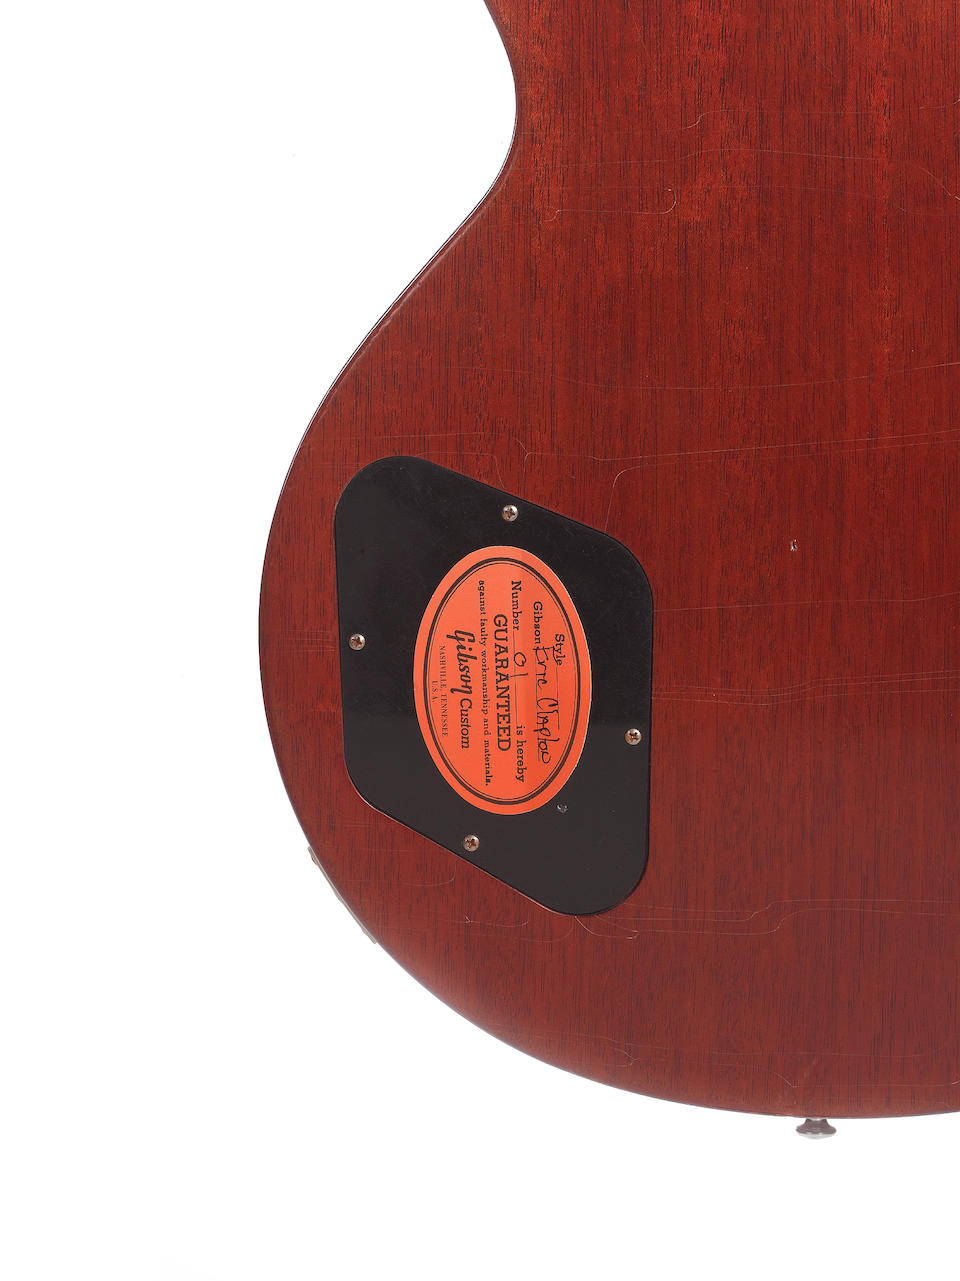 A 2010 Gibson Les Paul Standard Eric Clapton 'Beano' Tribute Model, Serial no. 01,